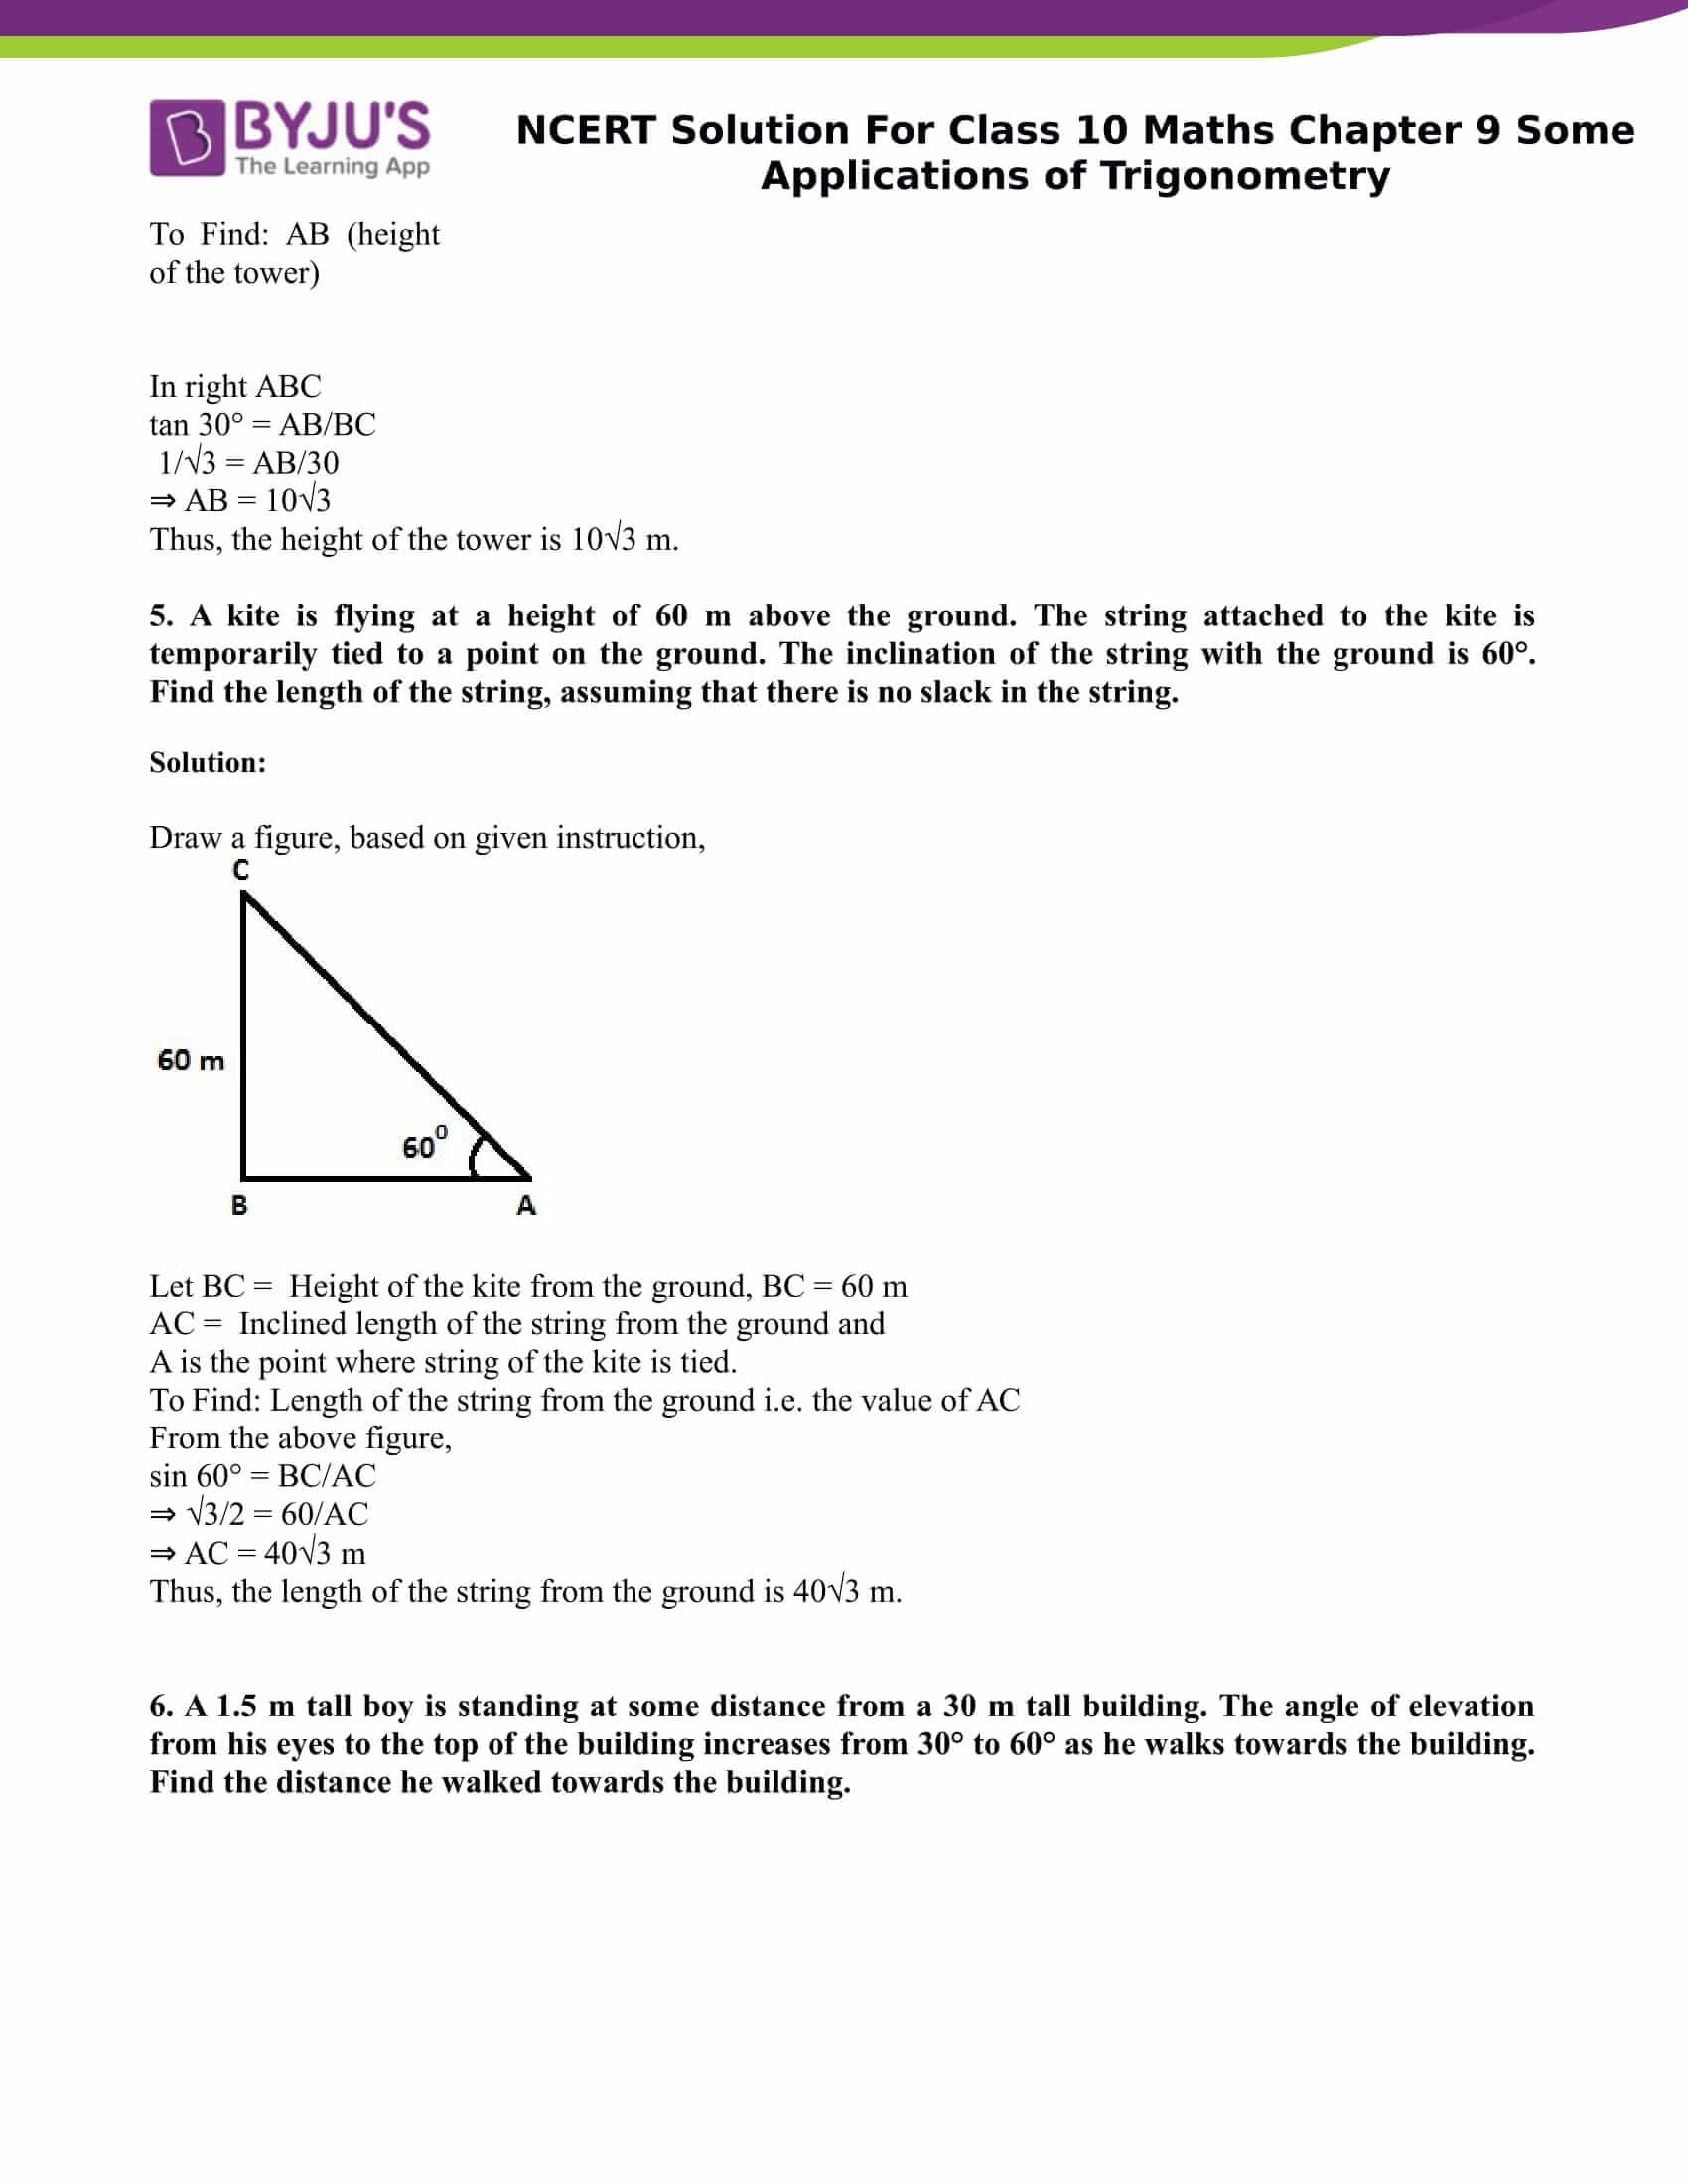 NCERT Solution for class 10 Maths Chapter 9 Some Applications of Trigonometry Part 4